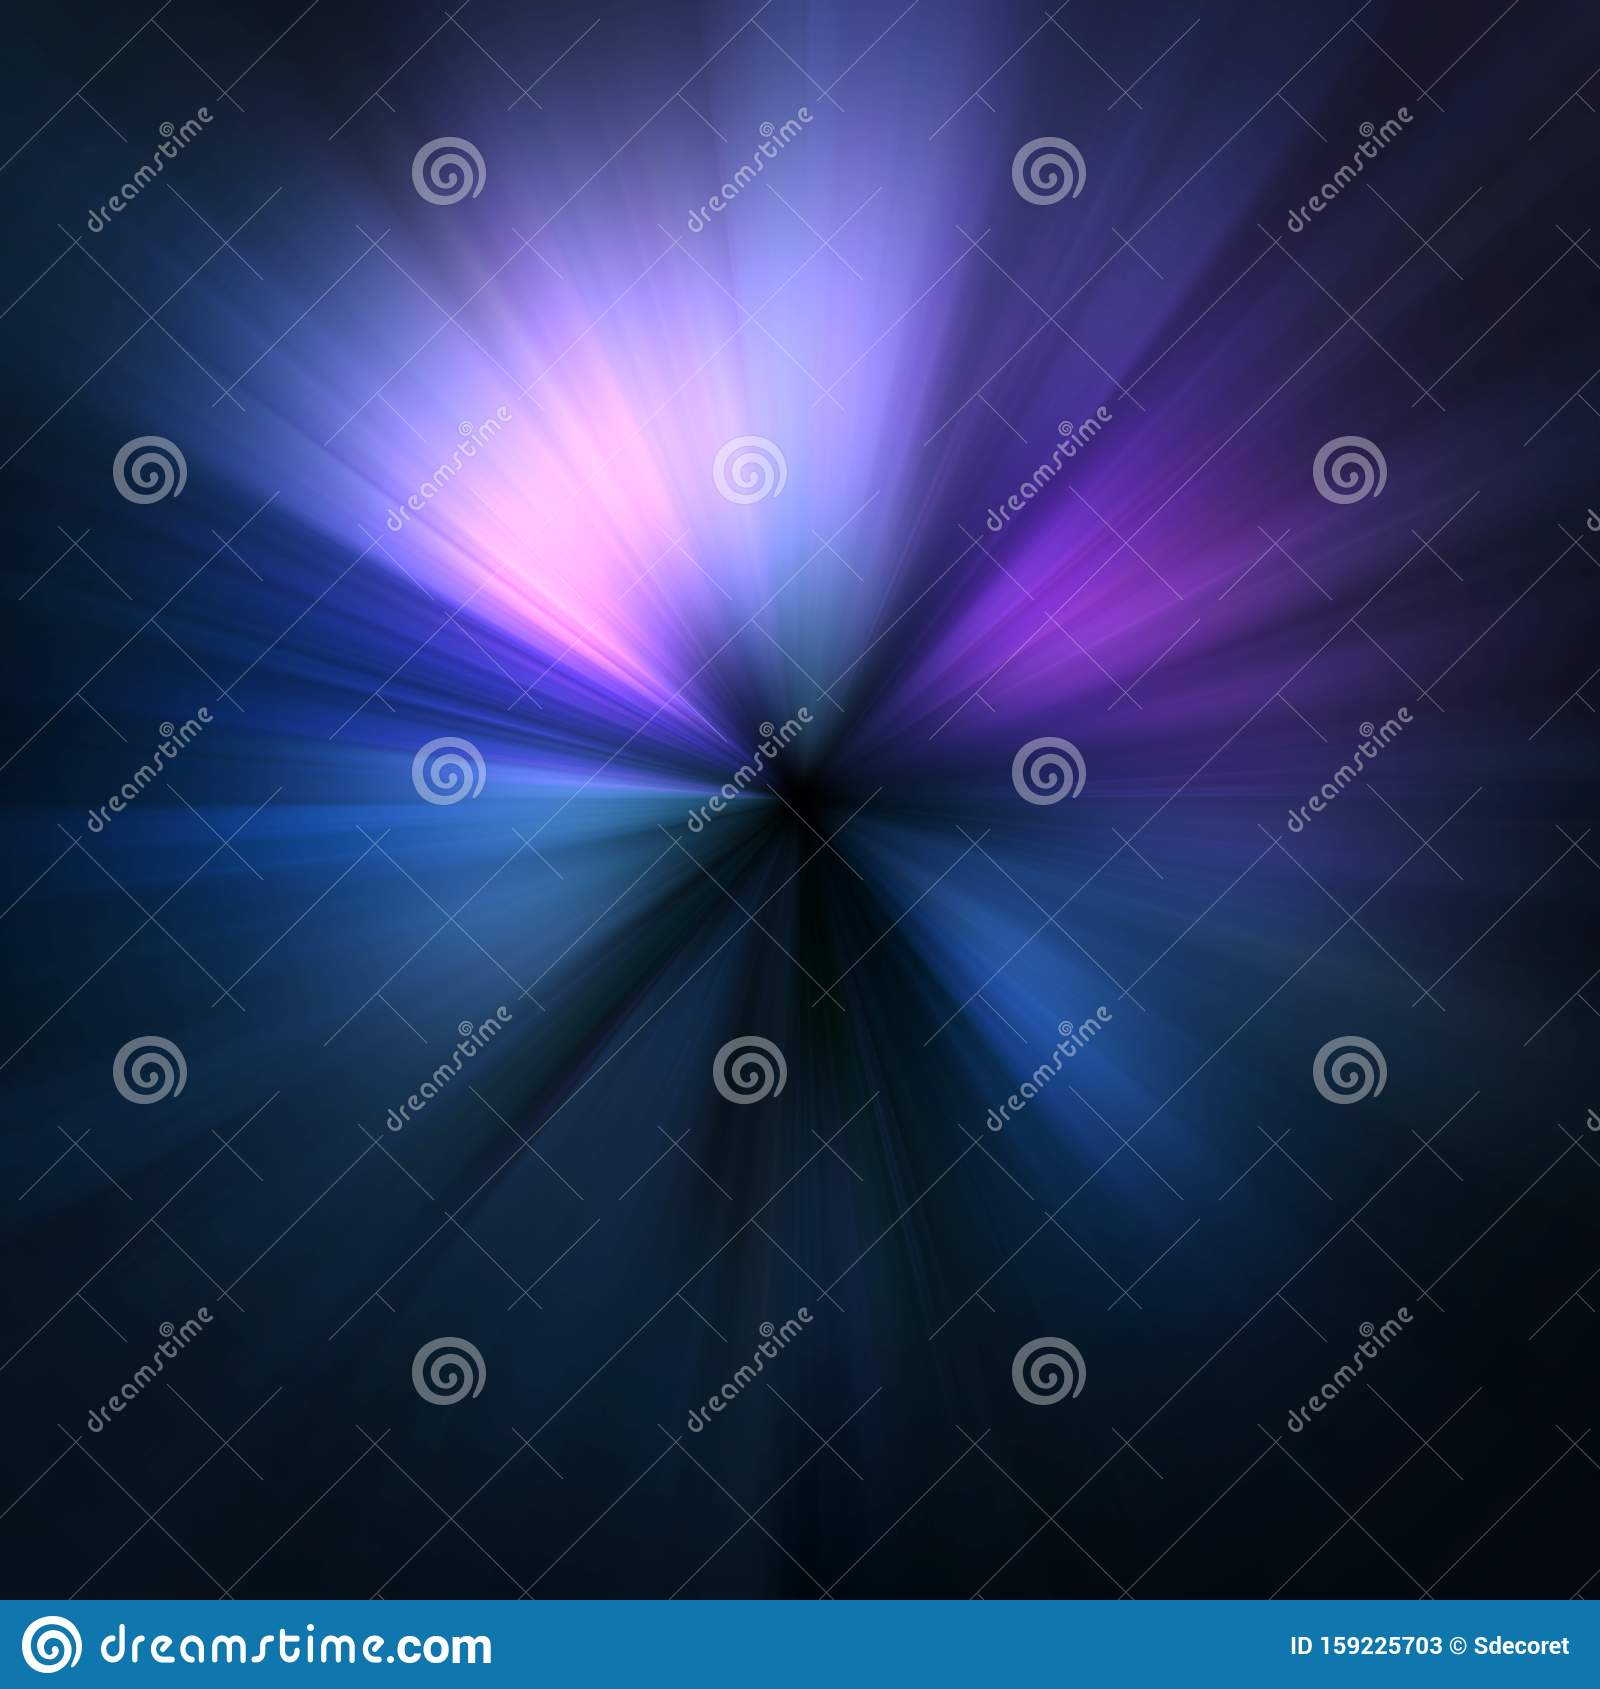 Abstract Blue Pink And Purple Zoom Effect Background Stock